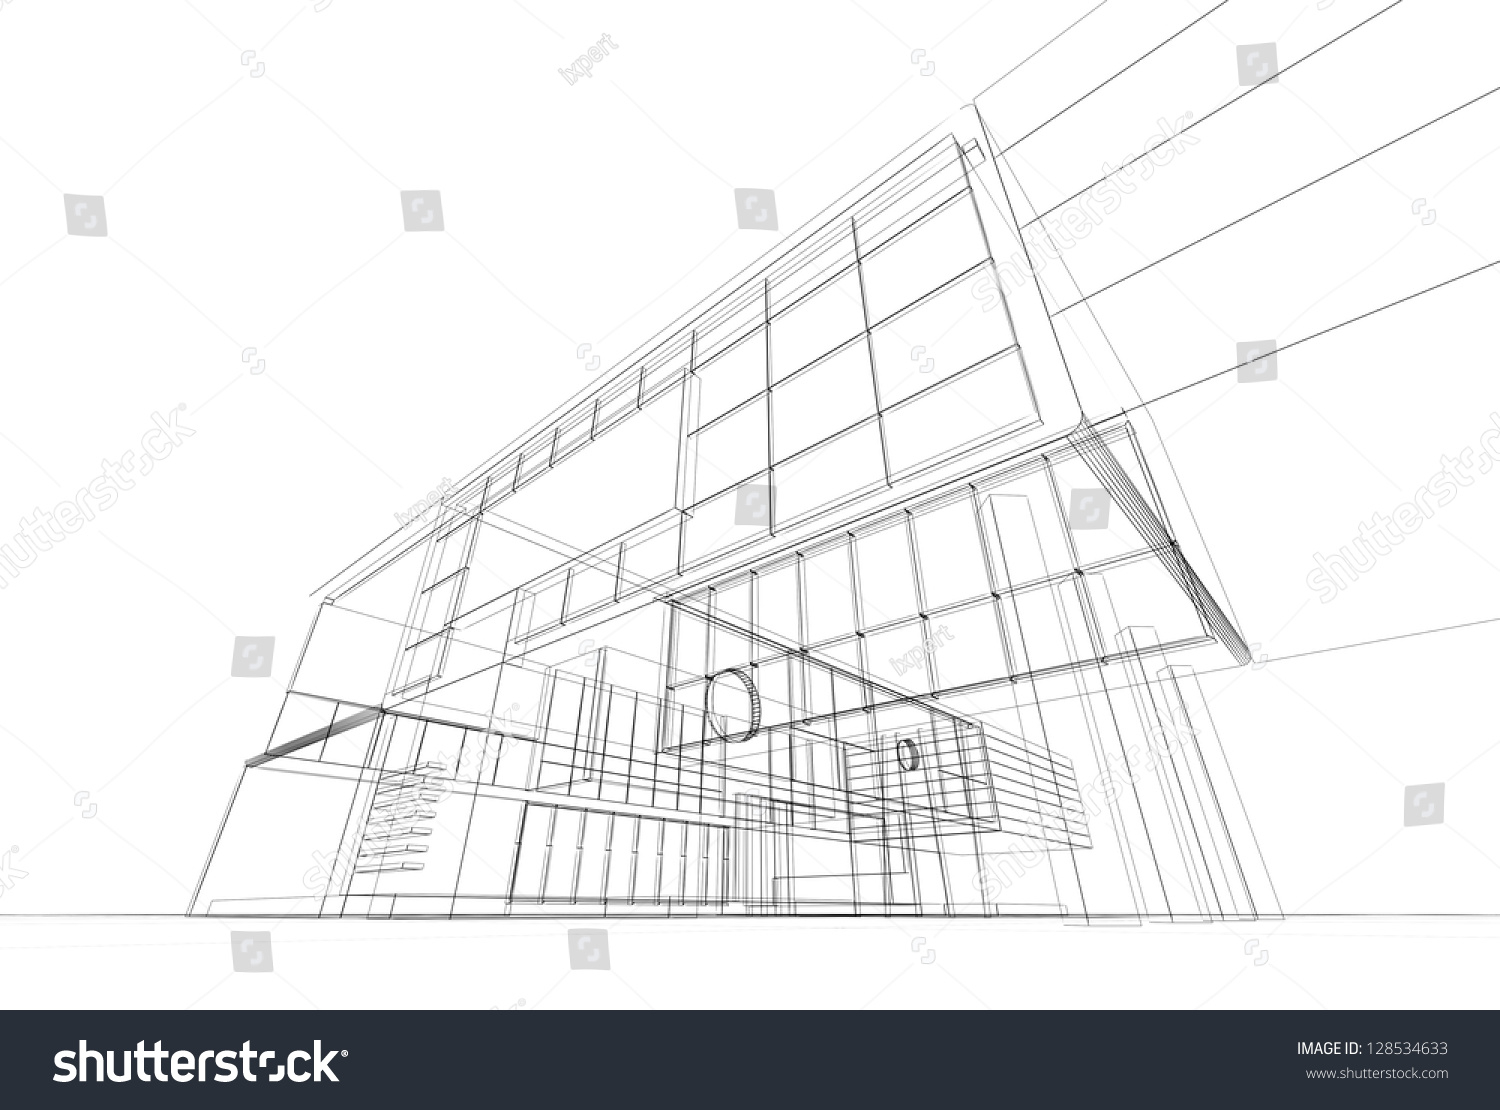 Architecture blueprint on white background stock illustration architecture blueprint on white background stock illustration 128534633 shutterstock malvernweather Image collections